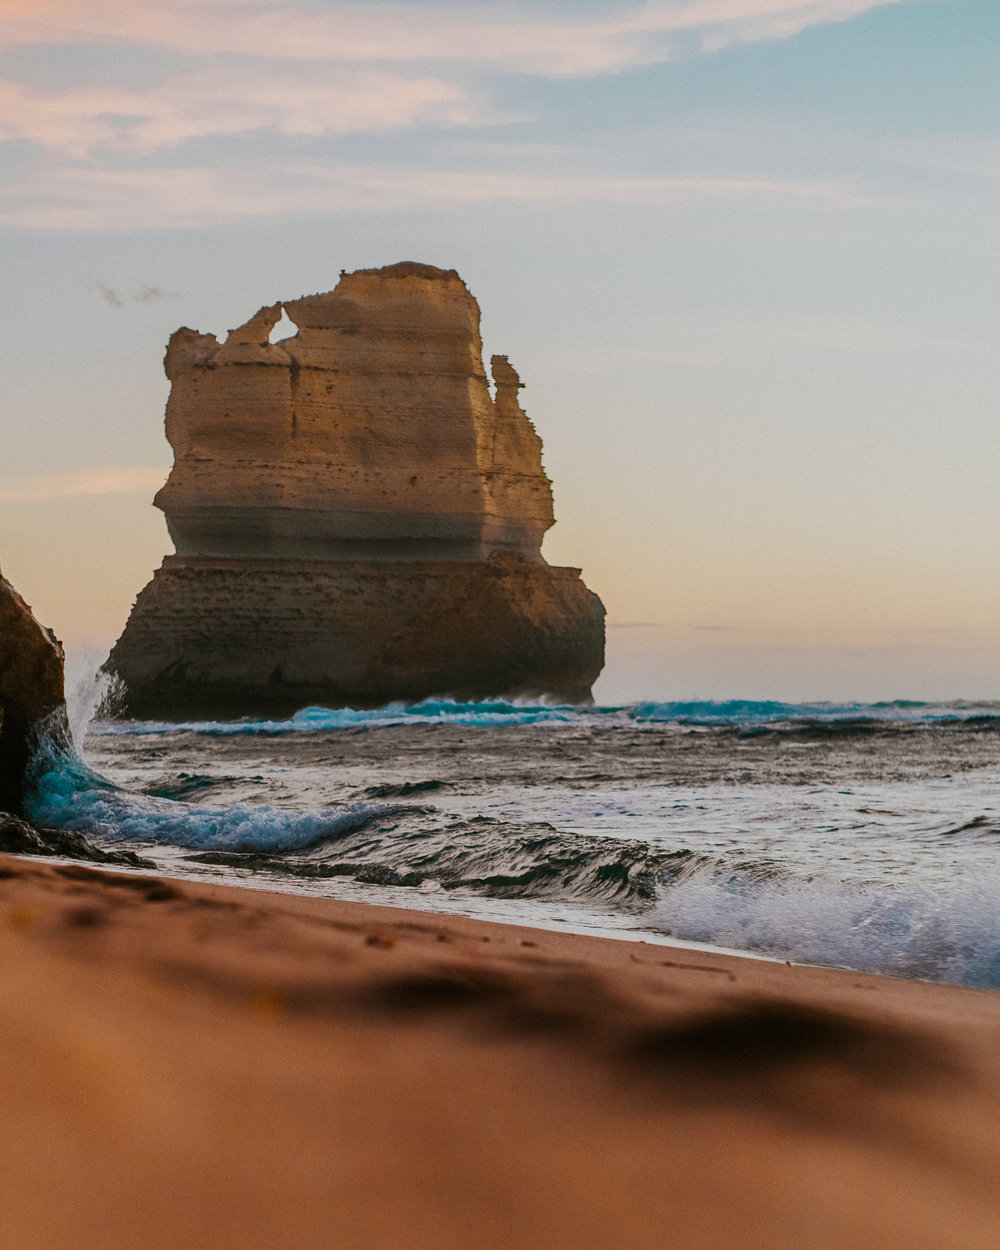 Views from the shore at the Twelve Apostles.